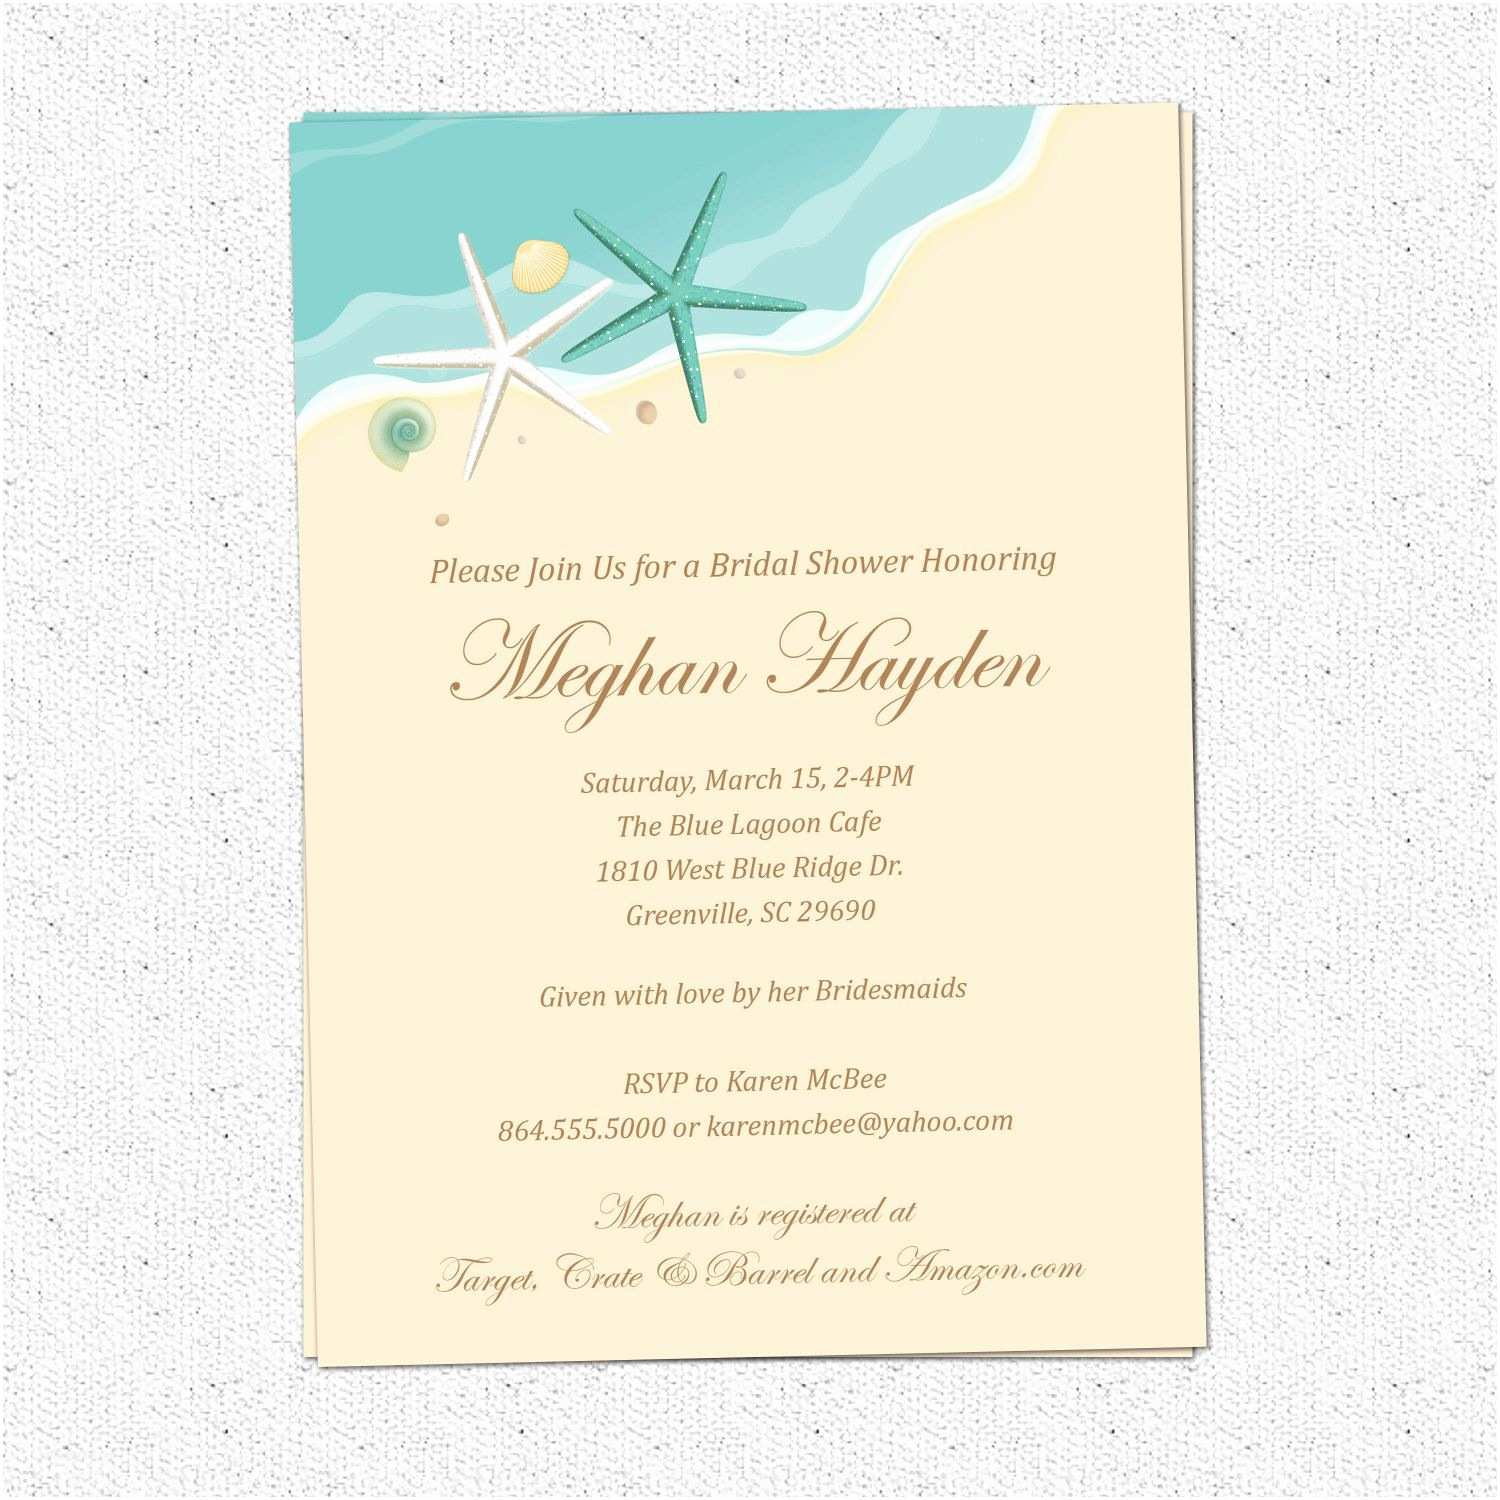 Unique Wedding Invitations Online Wedding Invitation Wording Line Rsvp Unique Beach